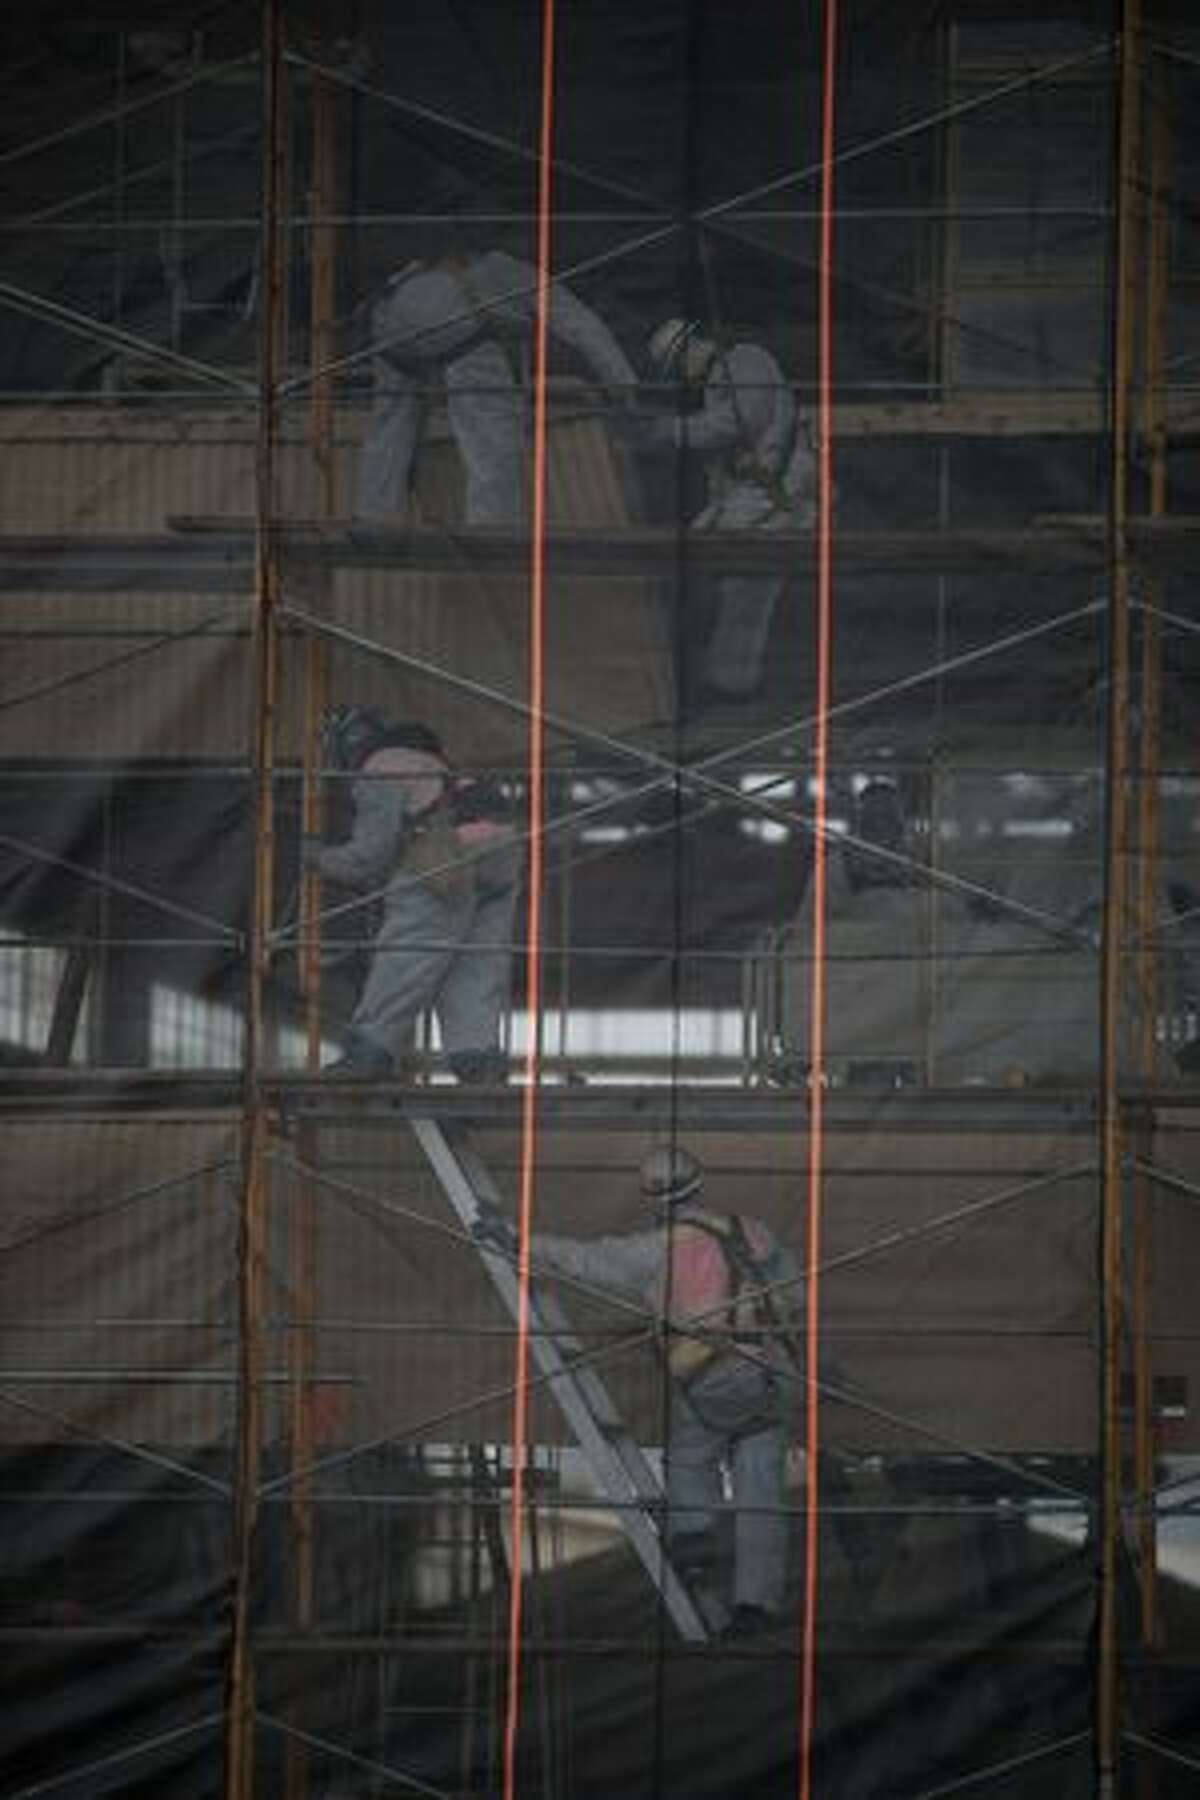 Workmen use scaffolding to begin tear down of Boeing's Plant 2. Netting keeps debris from falling into the Duwamish Waterway below.